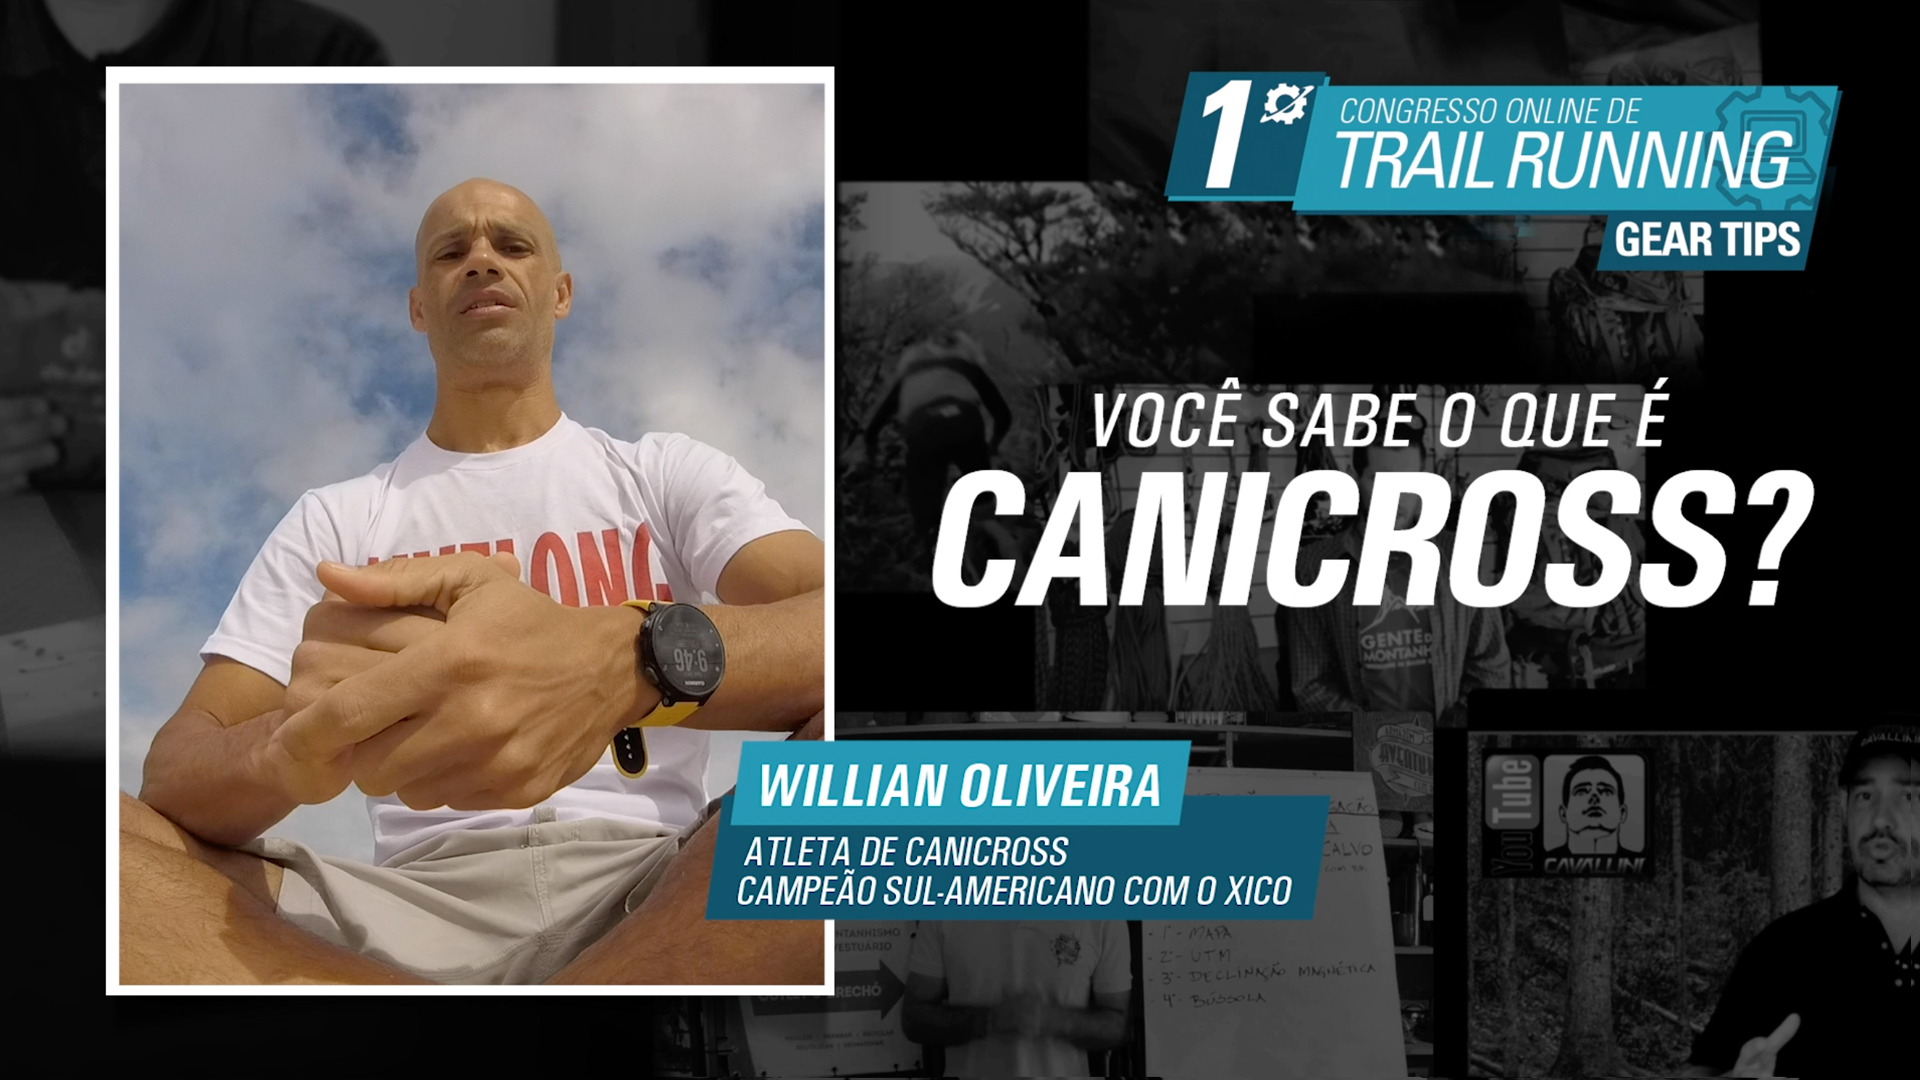 Canicross - Willian Oliveira